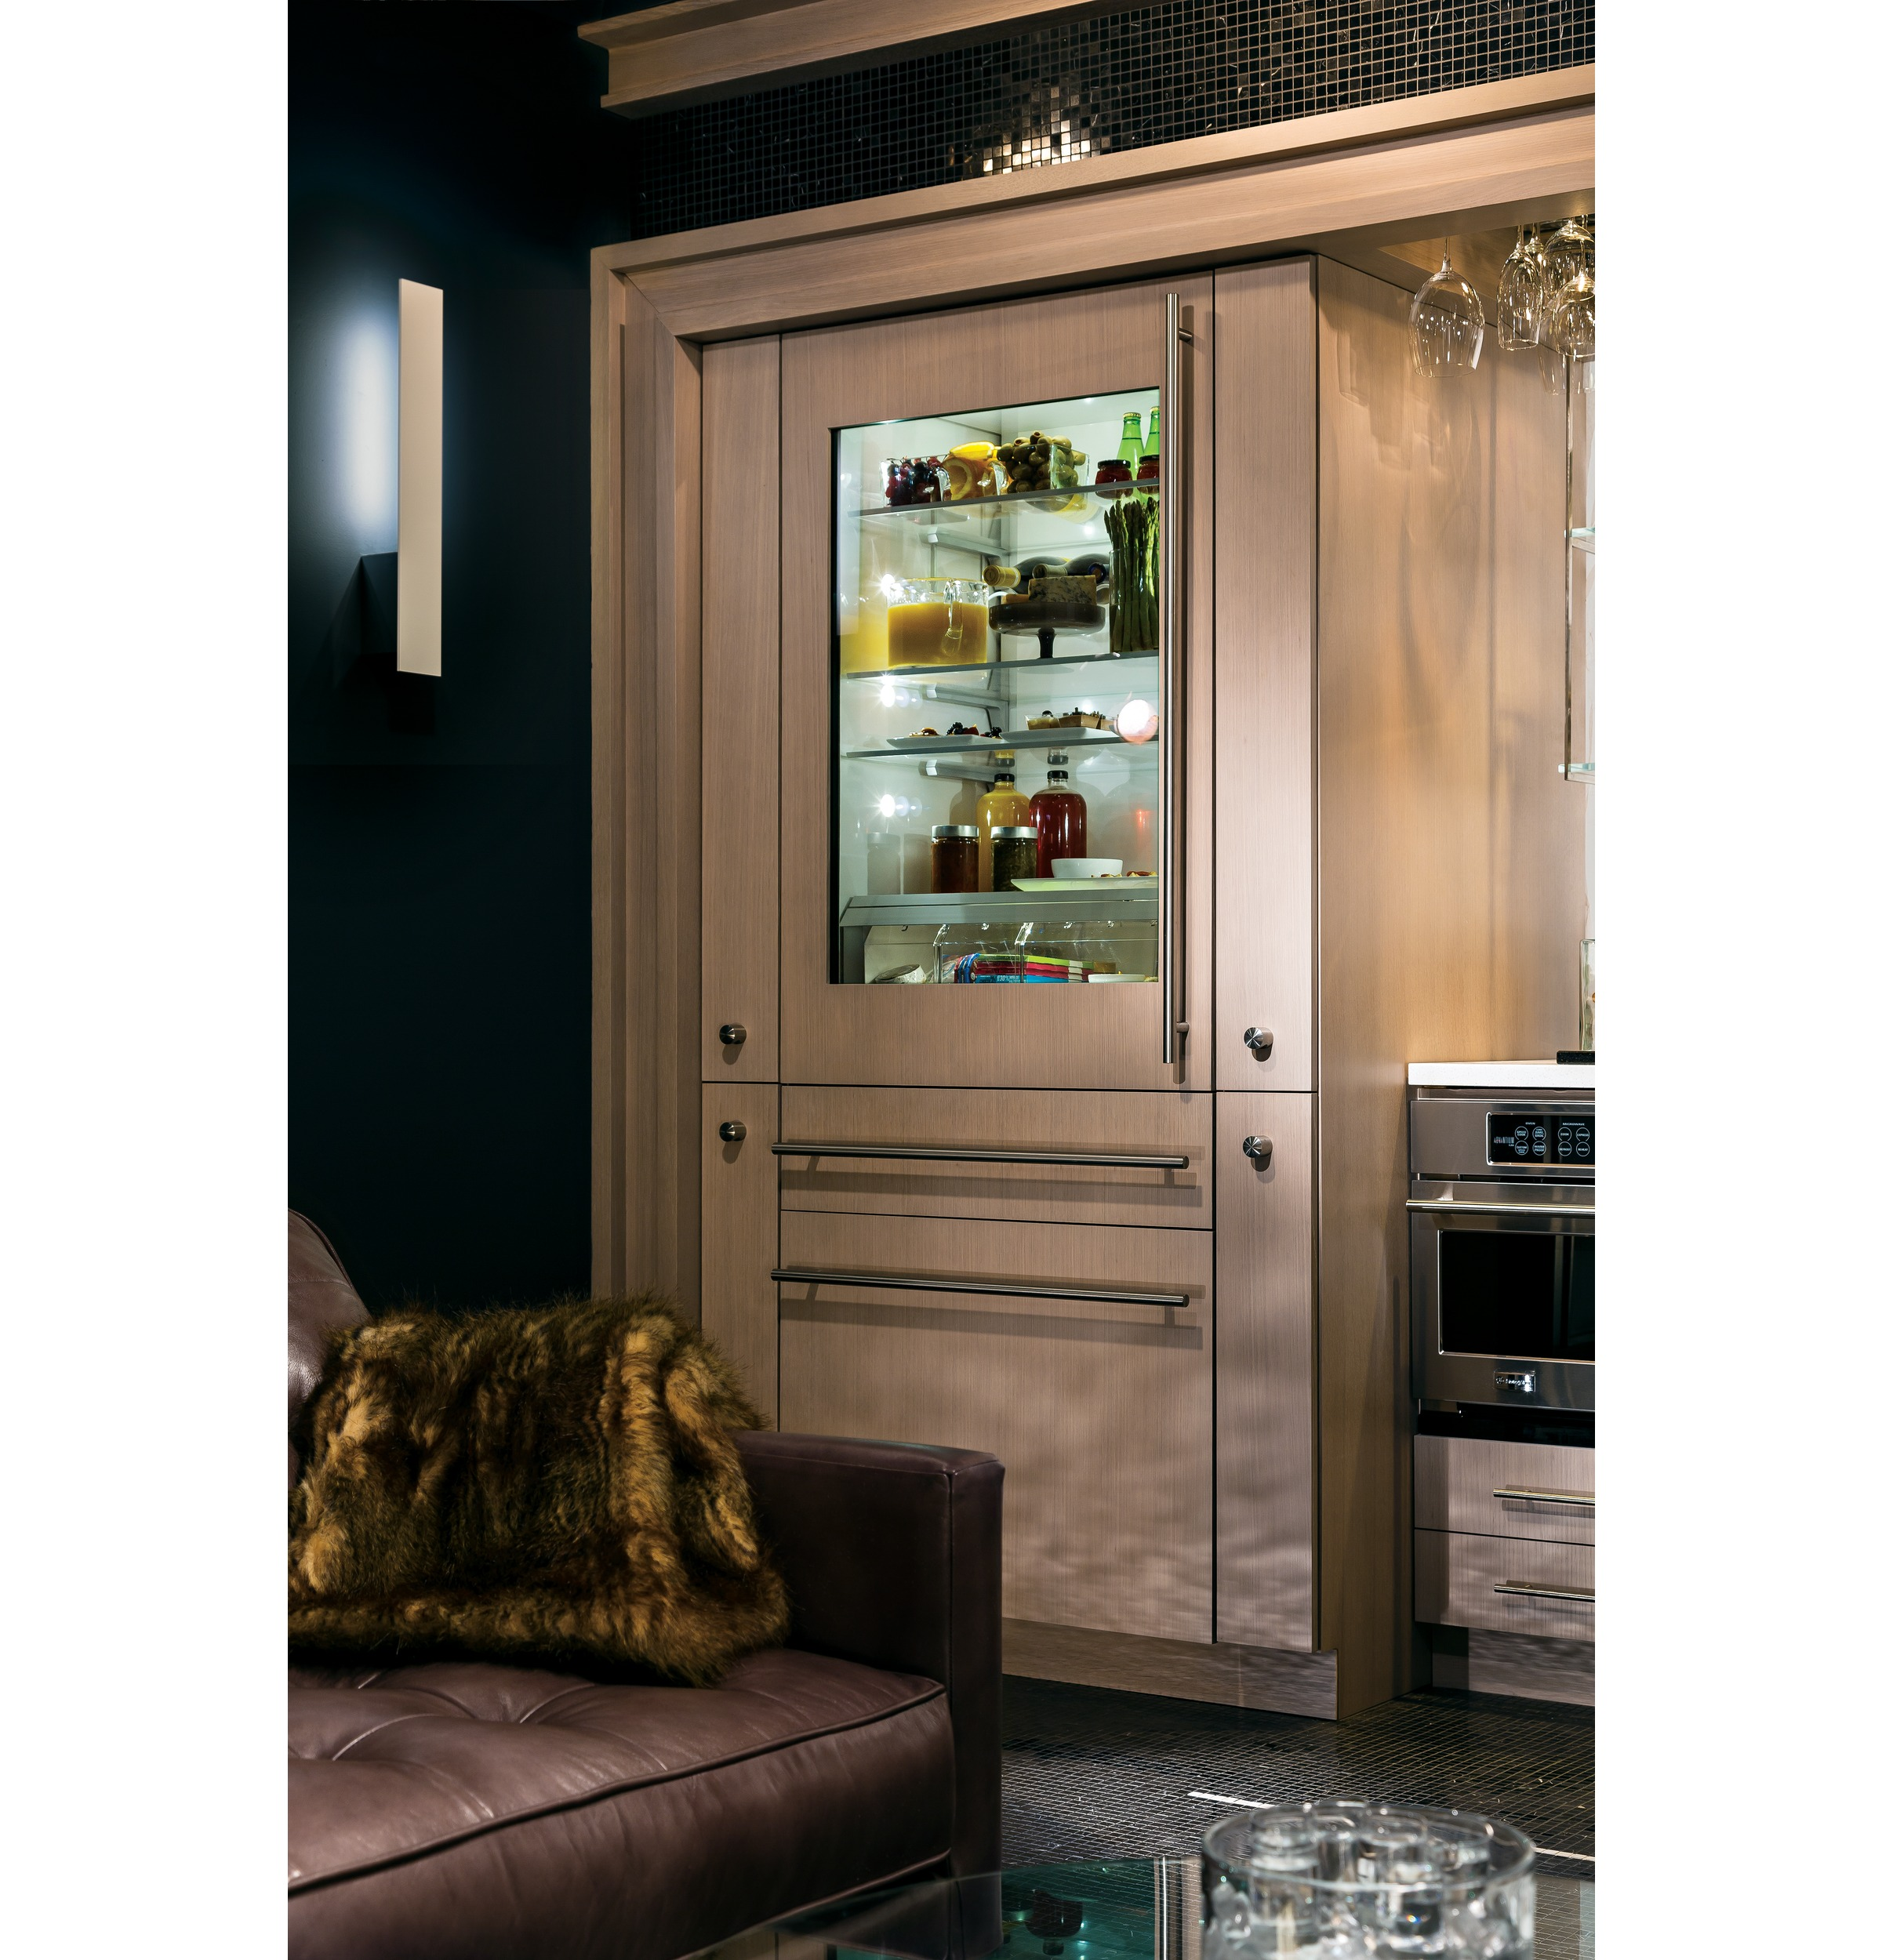 Monogram 30 integrated glass door refrigerator with convertible 1 of 11 planetlyrics Image collections